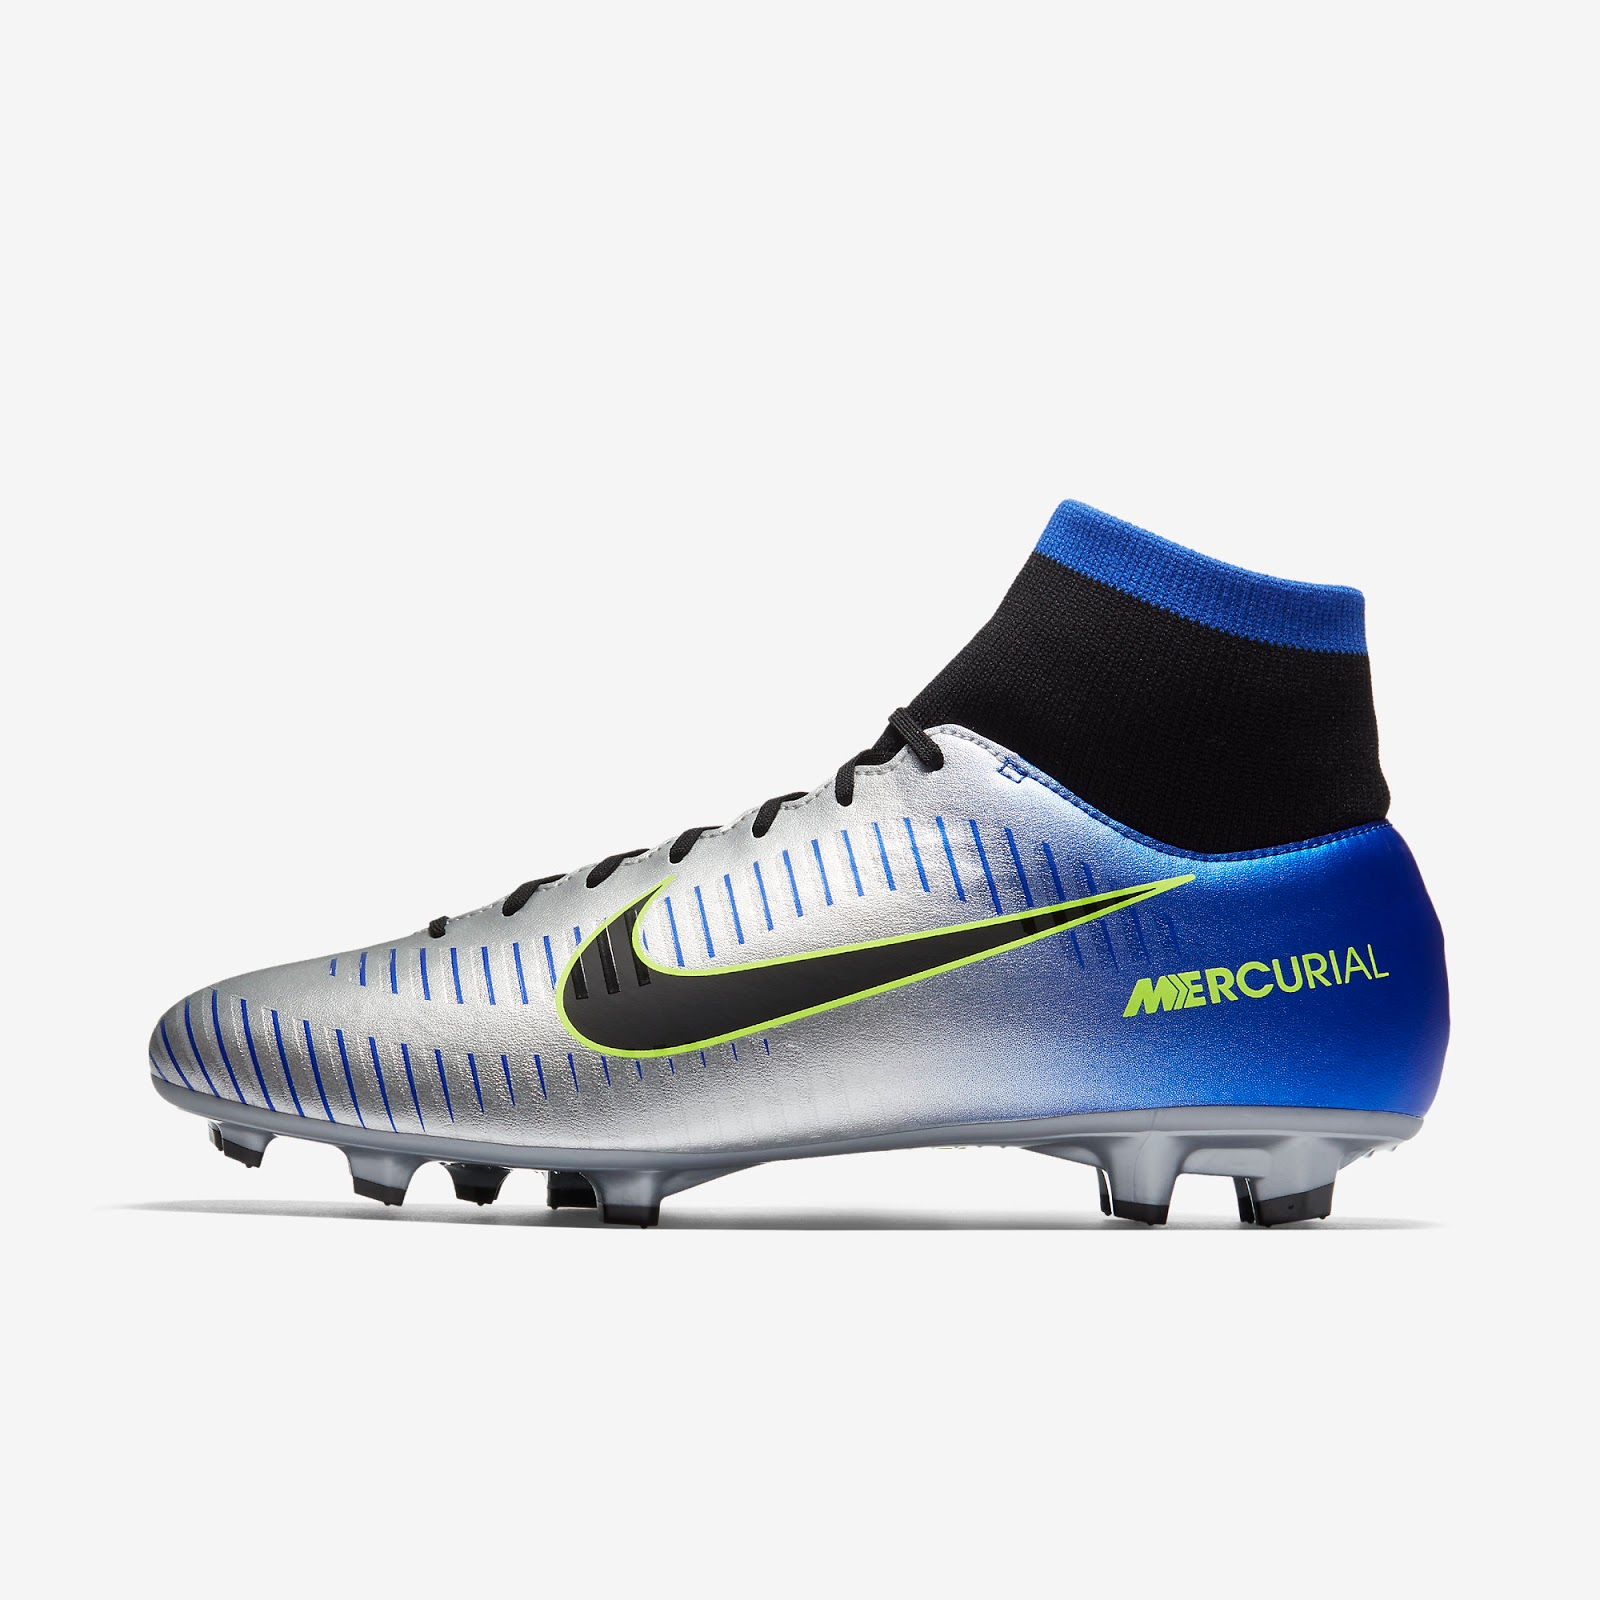 is cheap and looks crappy nike releases no high end nike mercurial neymar puro fenomeno. Black Bedroom Furniture Sets. Home Design Ideas